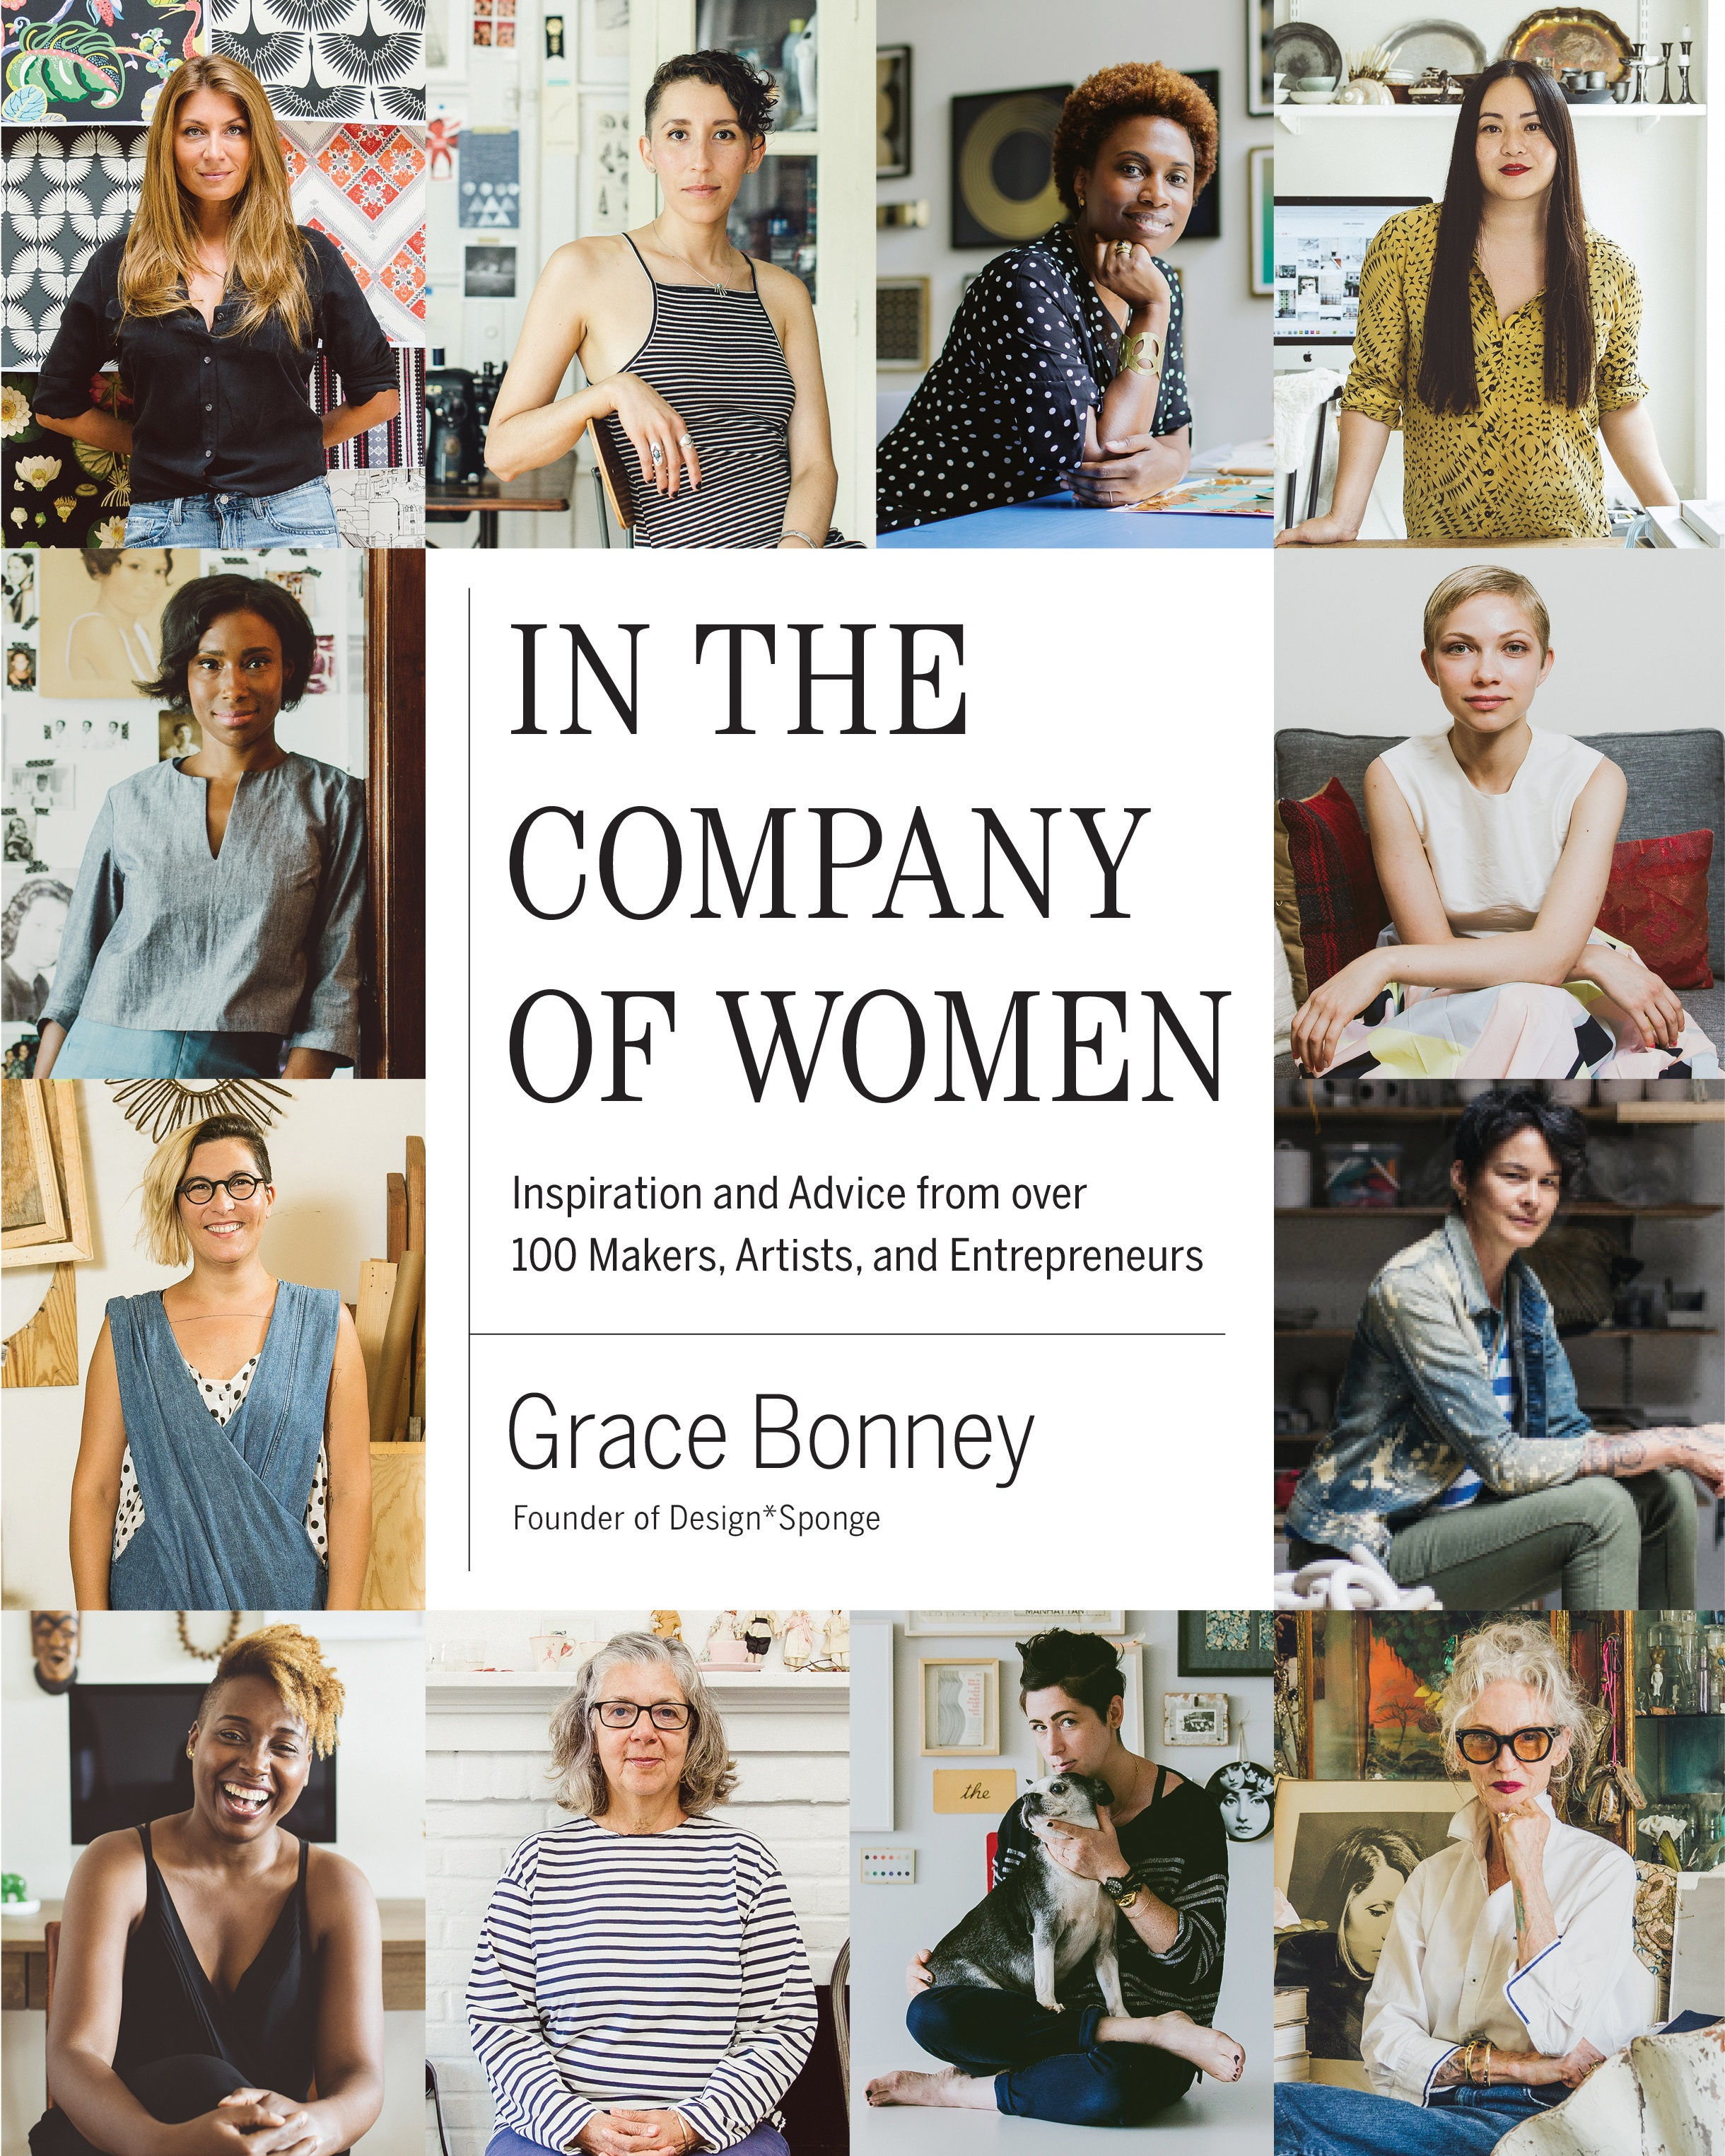 in the company of women grace bonney.jpg